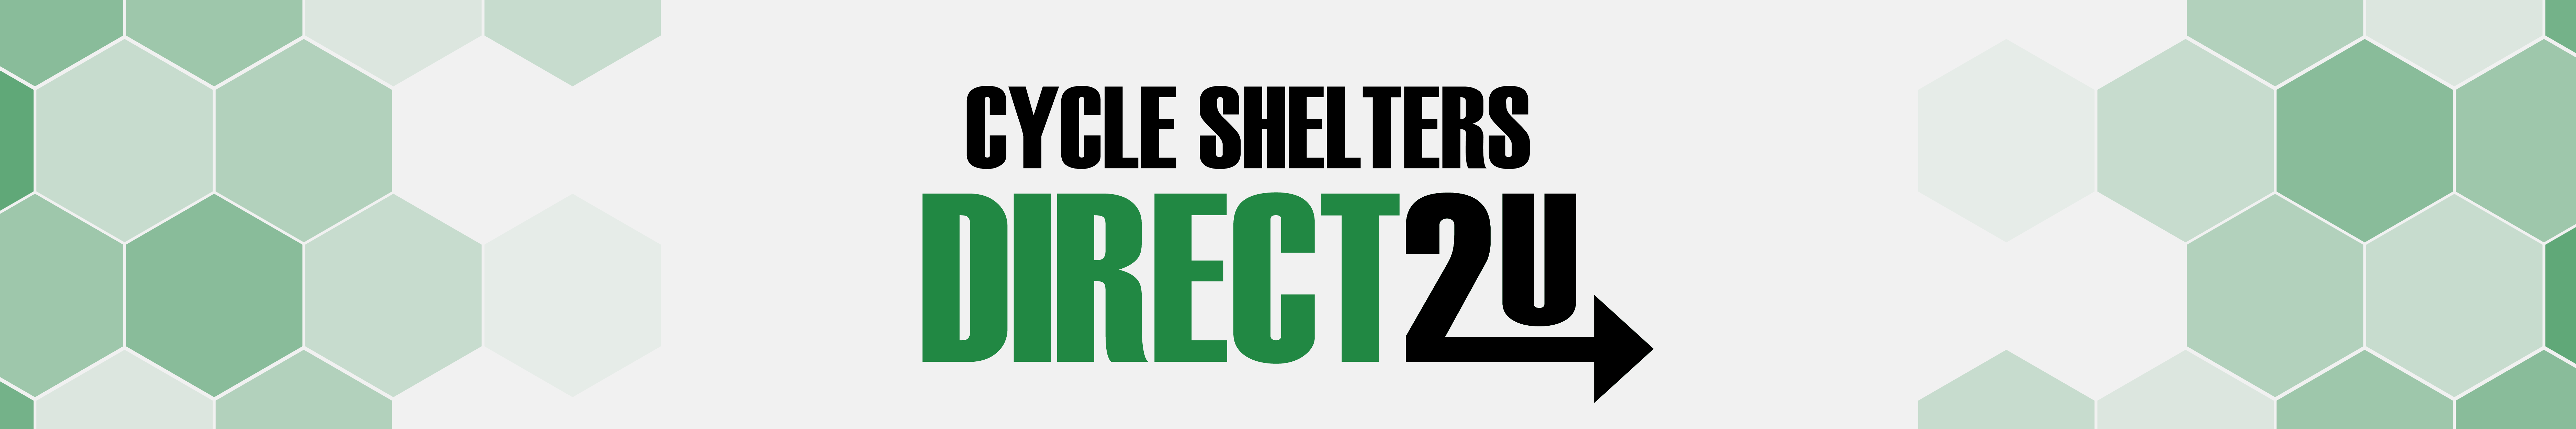 Cycle Shelters Blog